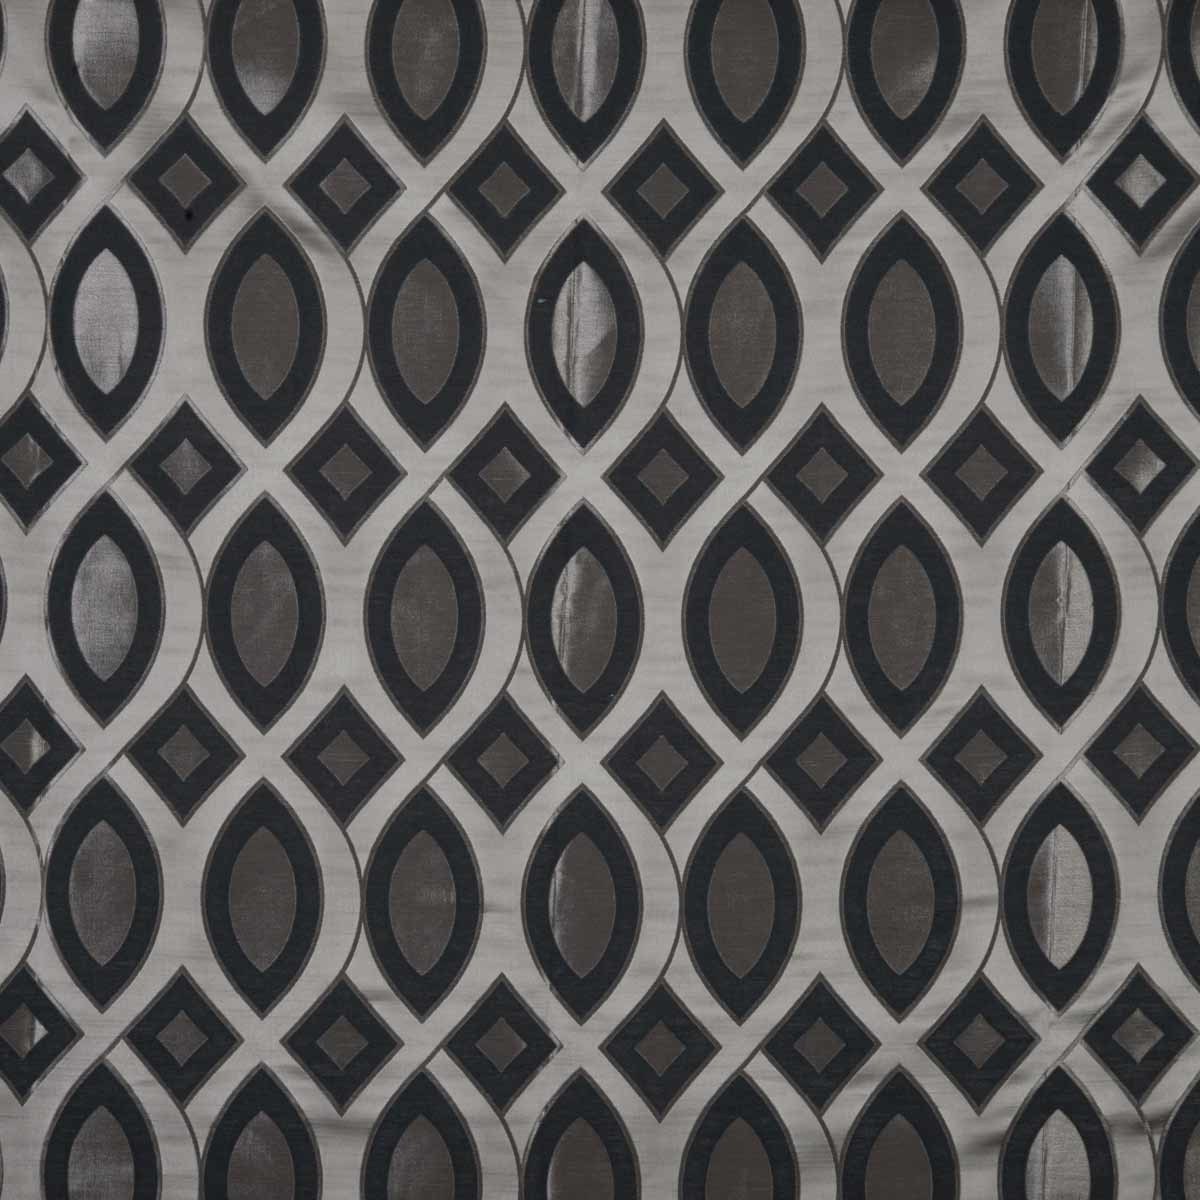 Stockists of Graphite Valentine Curtain Fabric